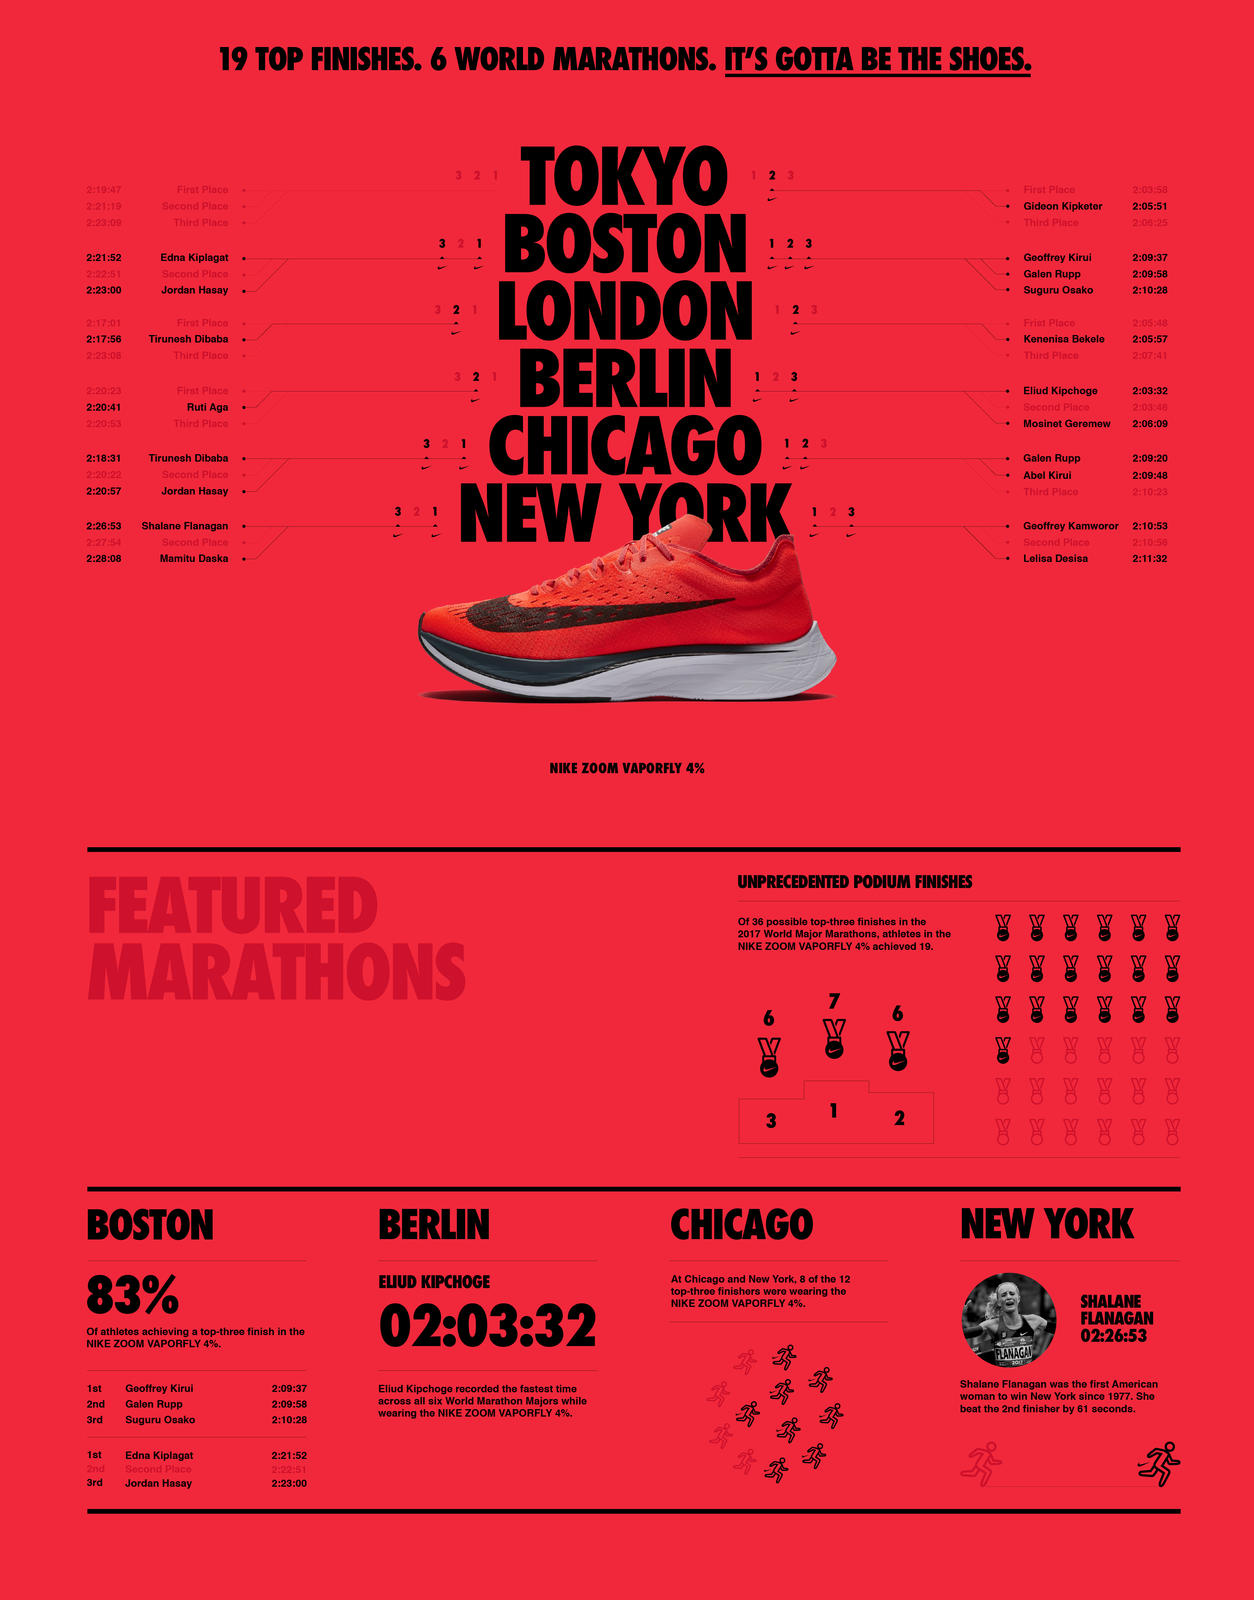 By the Numbers: The Nike Zoom Vaporfly 4% Dominates Marathons - Nike